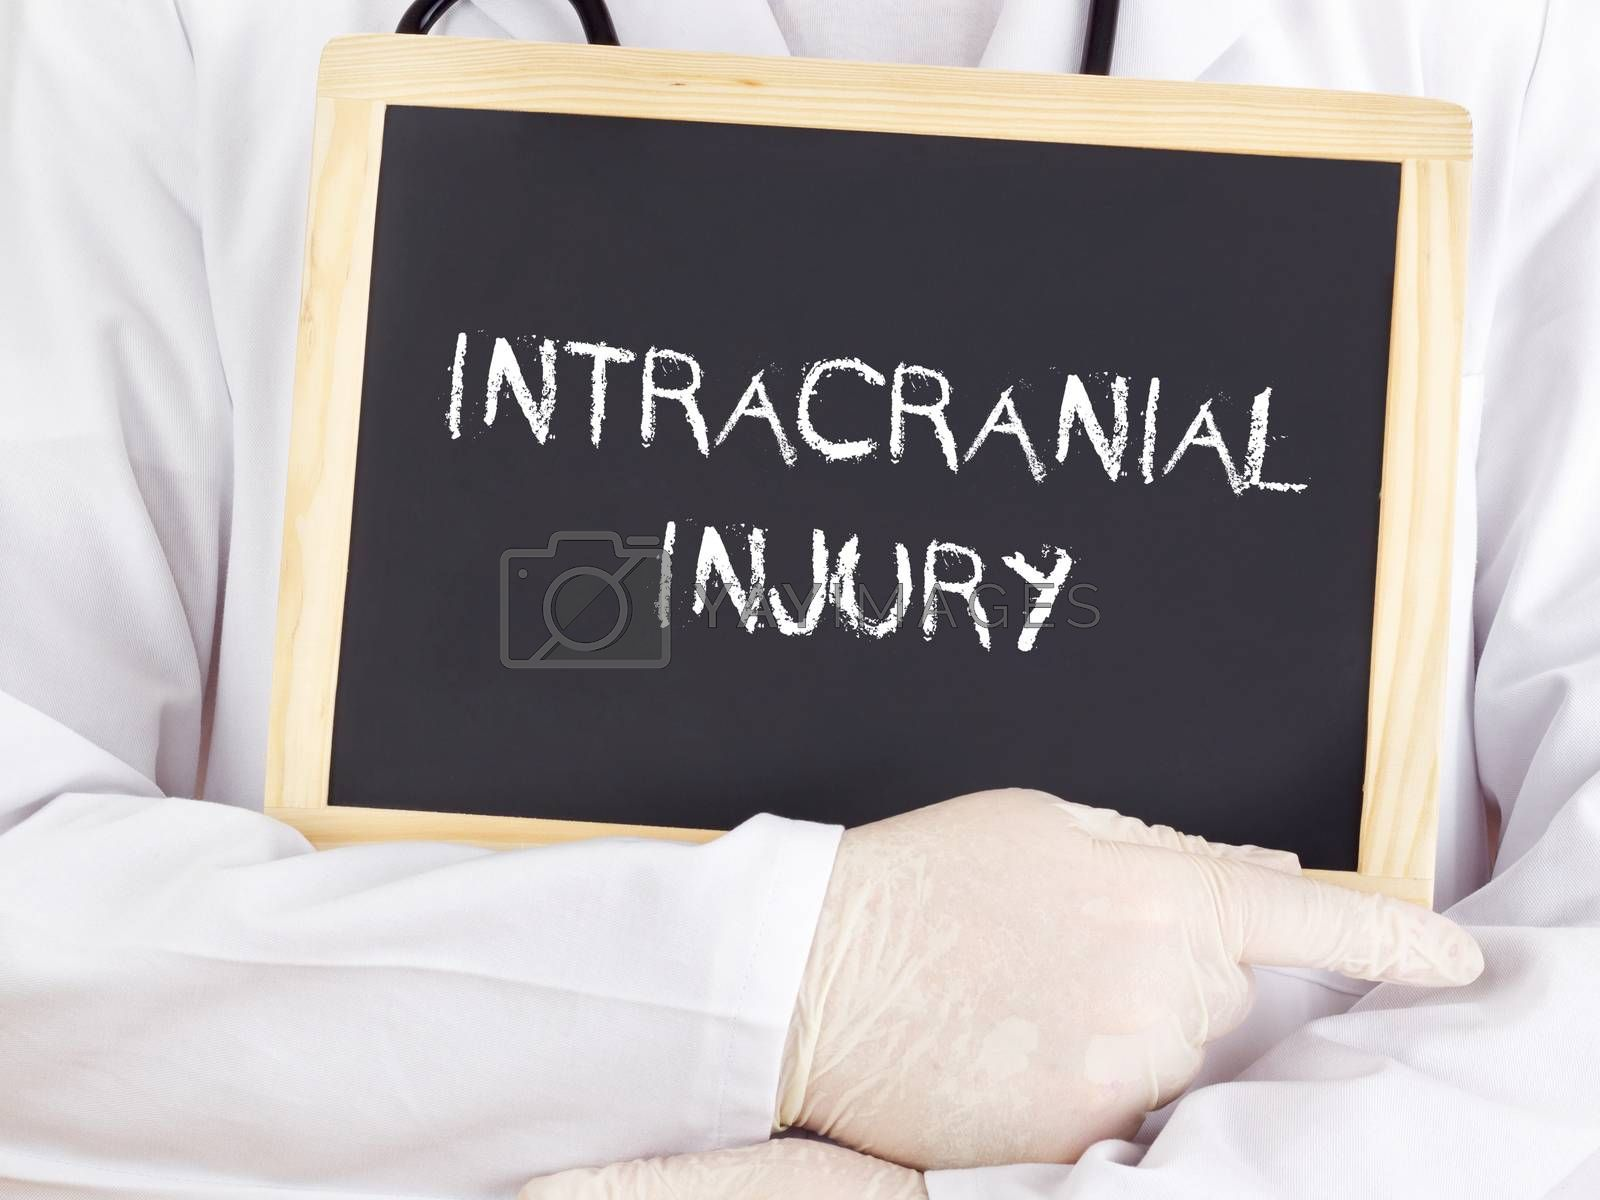 Doctor shows information on blackboard: intracranial injury